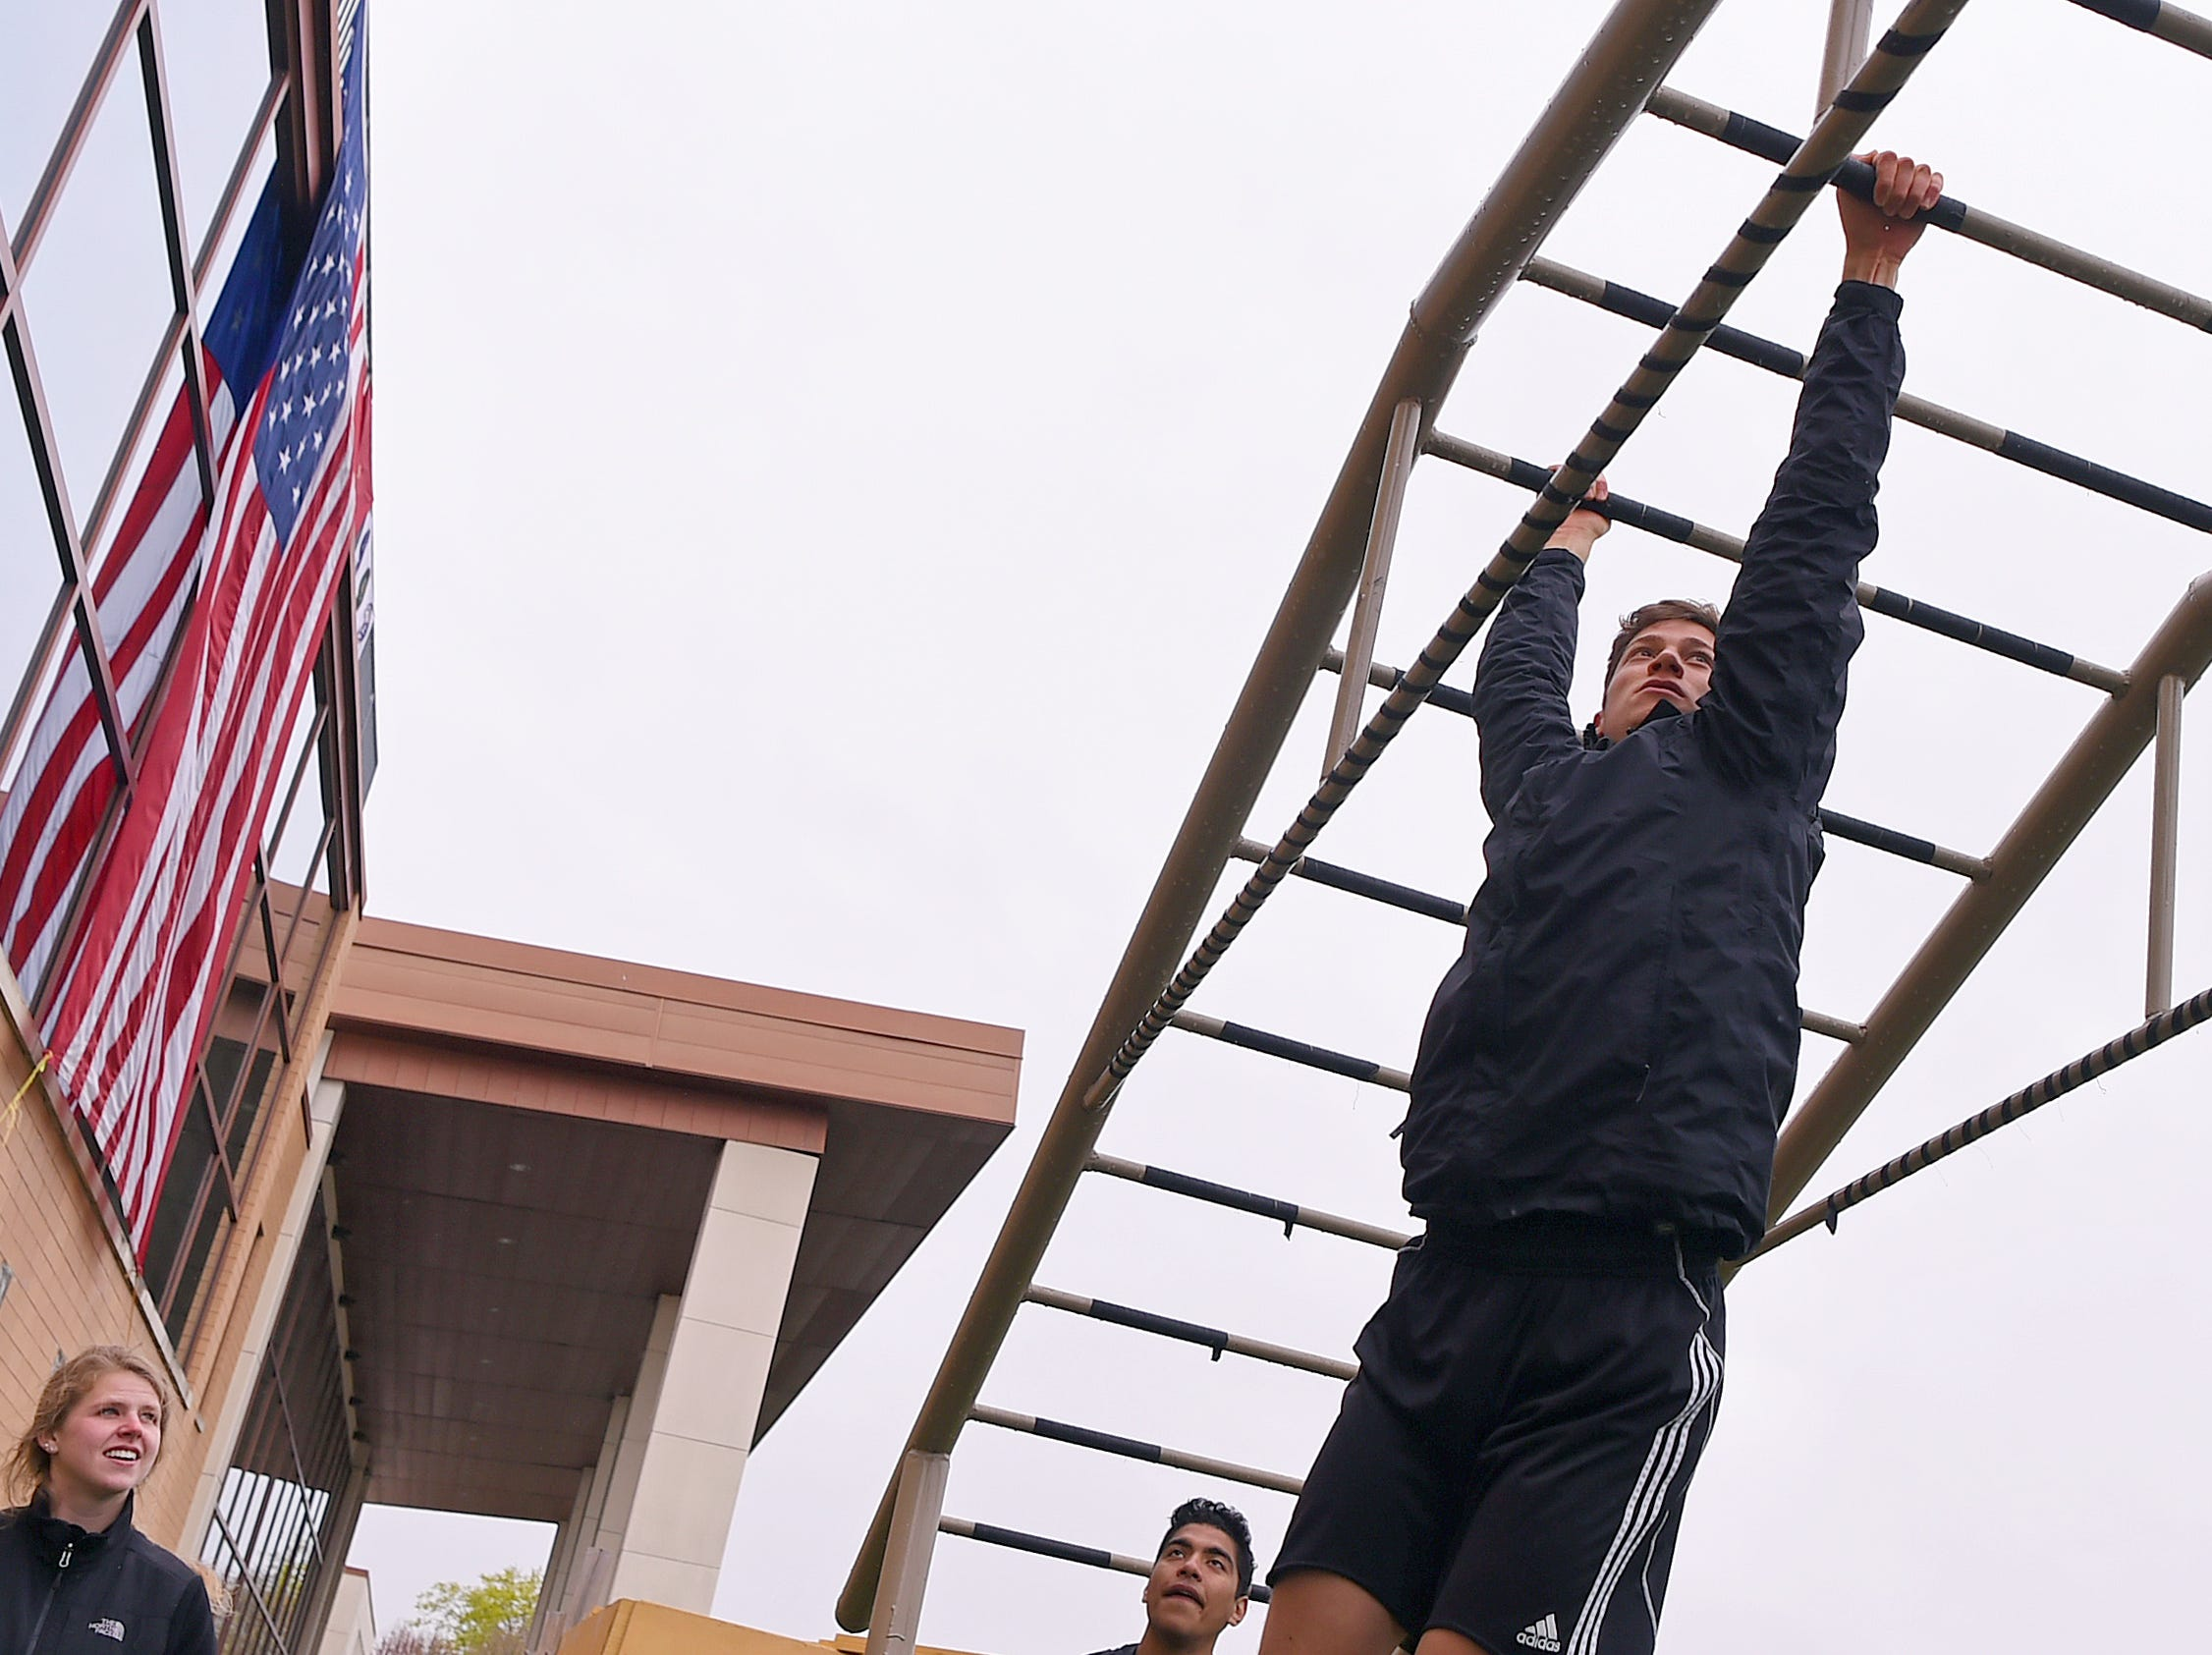 Michael Galbato, a Cornell student, on the first obstacle of the  Mud, Sweat and Cheers Extreme Fitness Challenge at Island Health and Fitness in Ithaca on Saturday, April 27, 2019. The 5K obstacle course race is held annually in honor of Marine Cpl. Christopher Bordoni, an Ithaca native who died in 2012 after being wounded while conducting combat operations in Afghanistan.